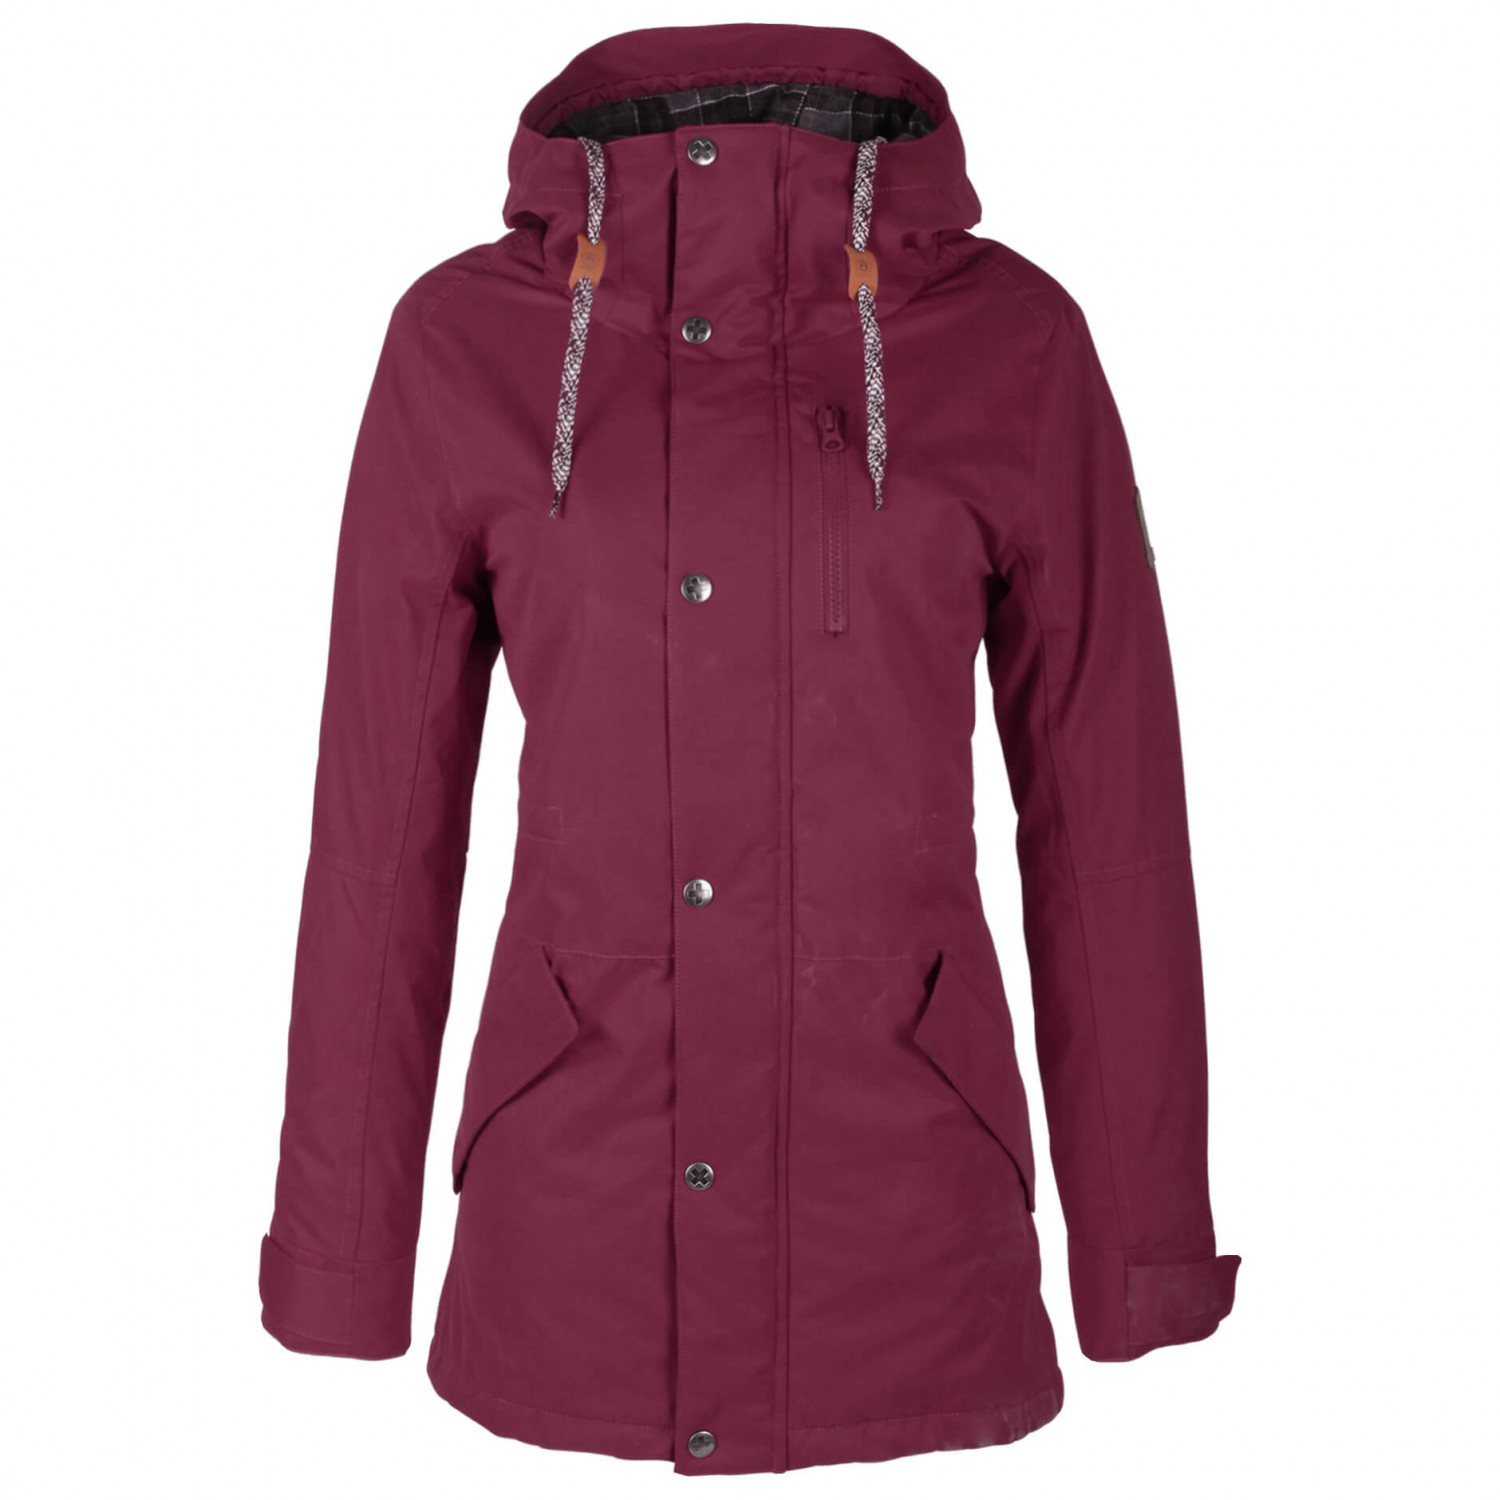 Alprausch Stadtwärmer Parka Winter jacket Women's | Buy